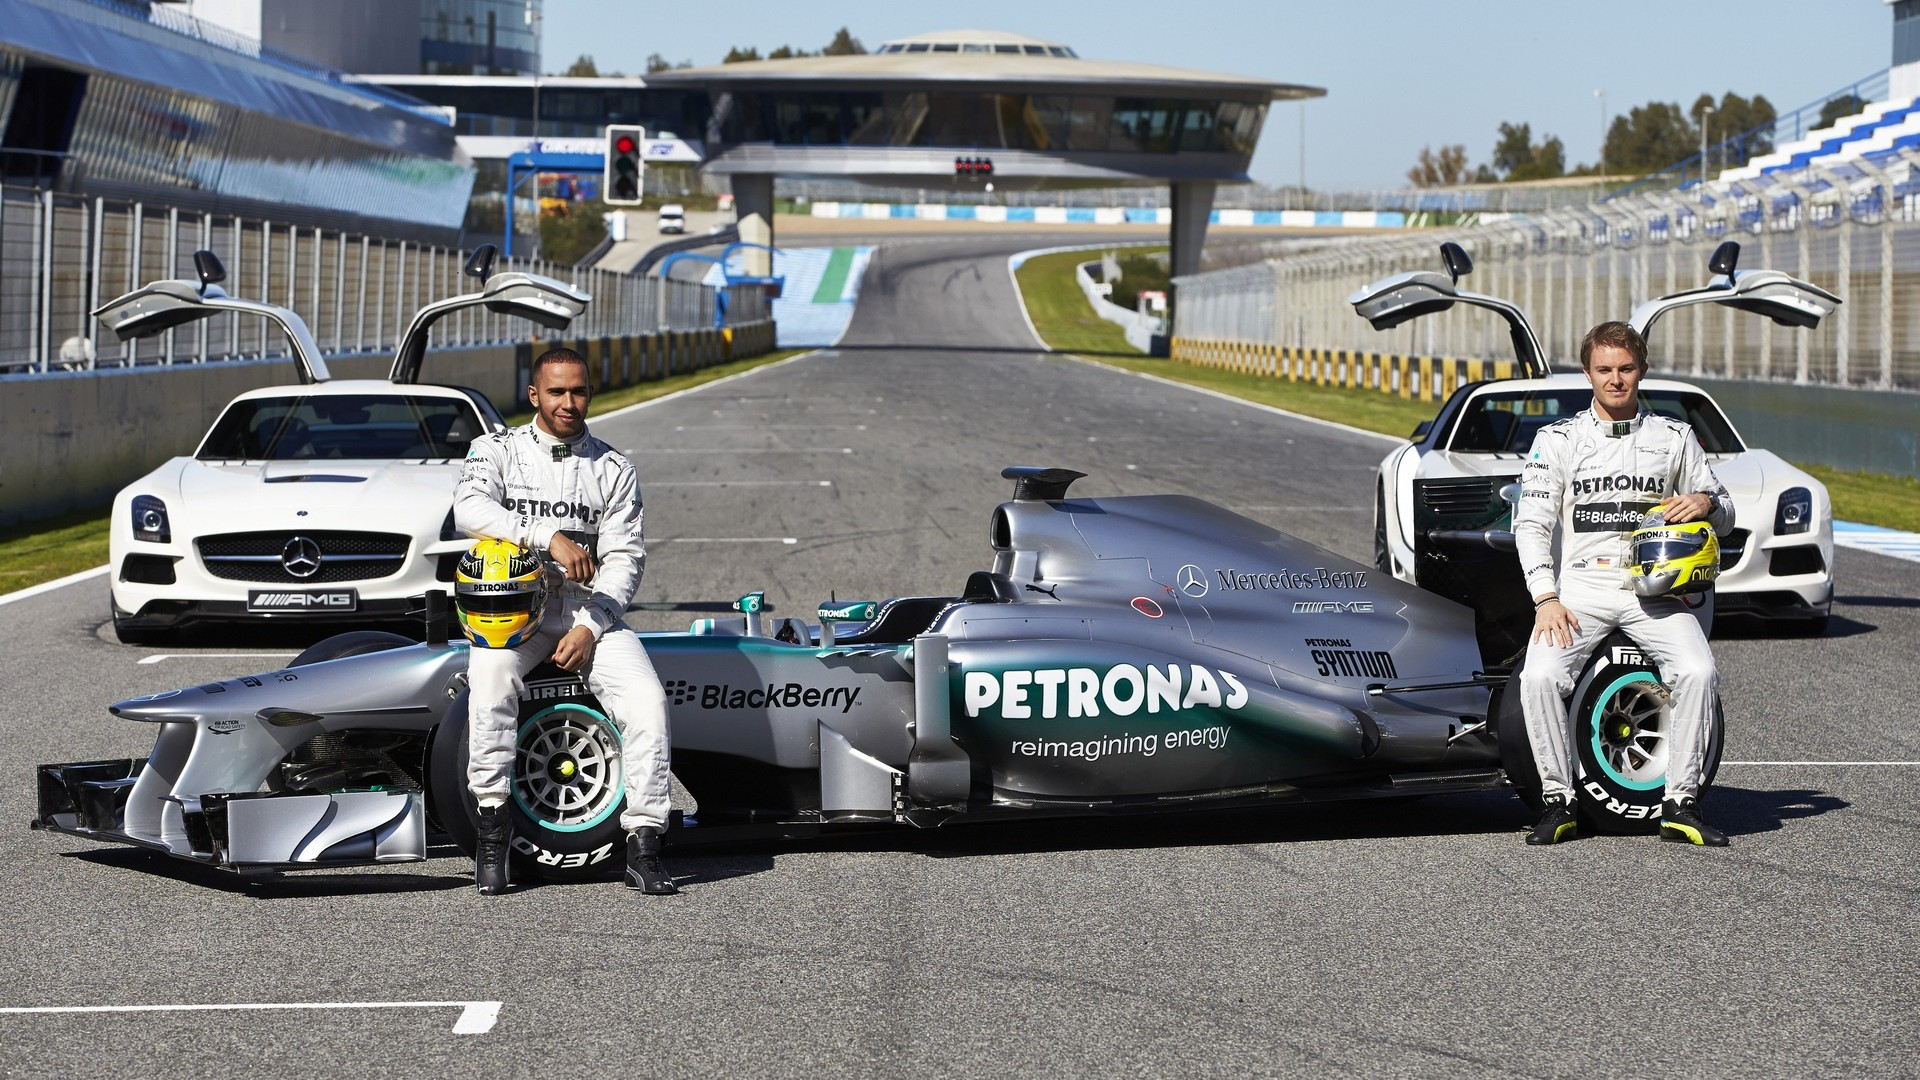 hd pictures 2013 launch mercedes w04 f1 car f1. Black Bedroom Furniture Sets. Home Design Ideas